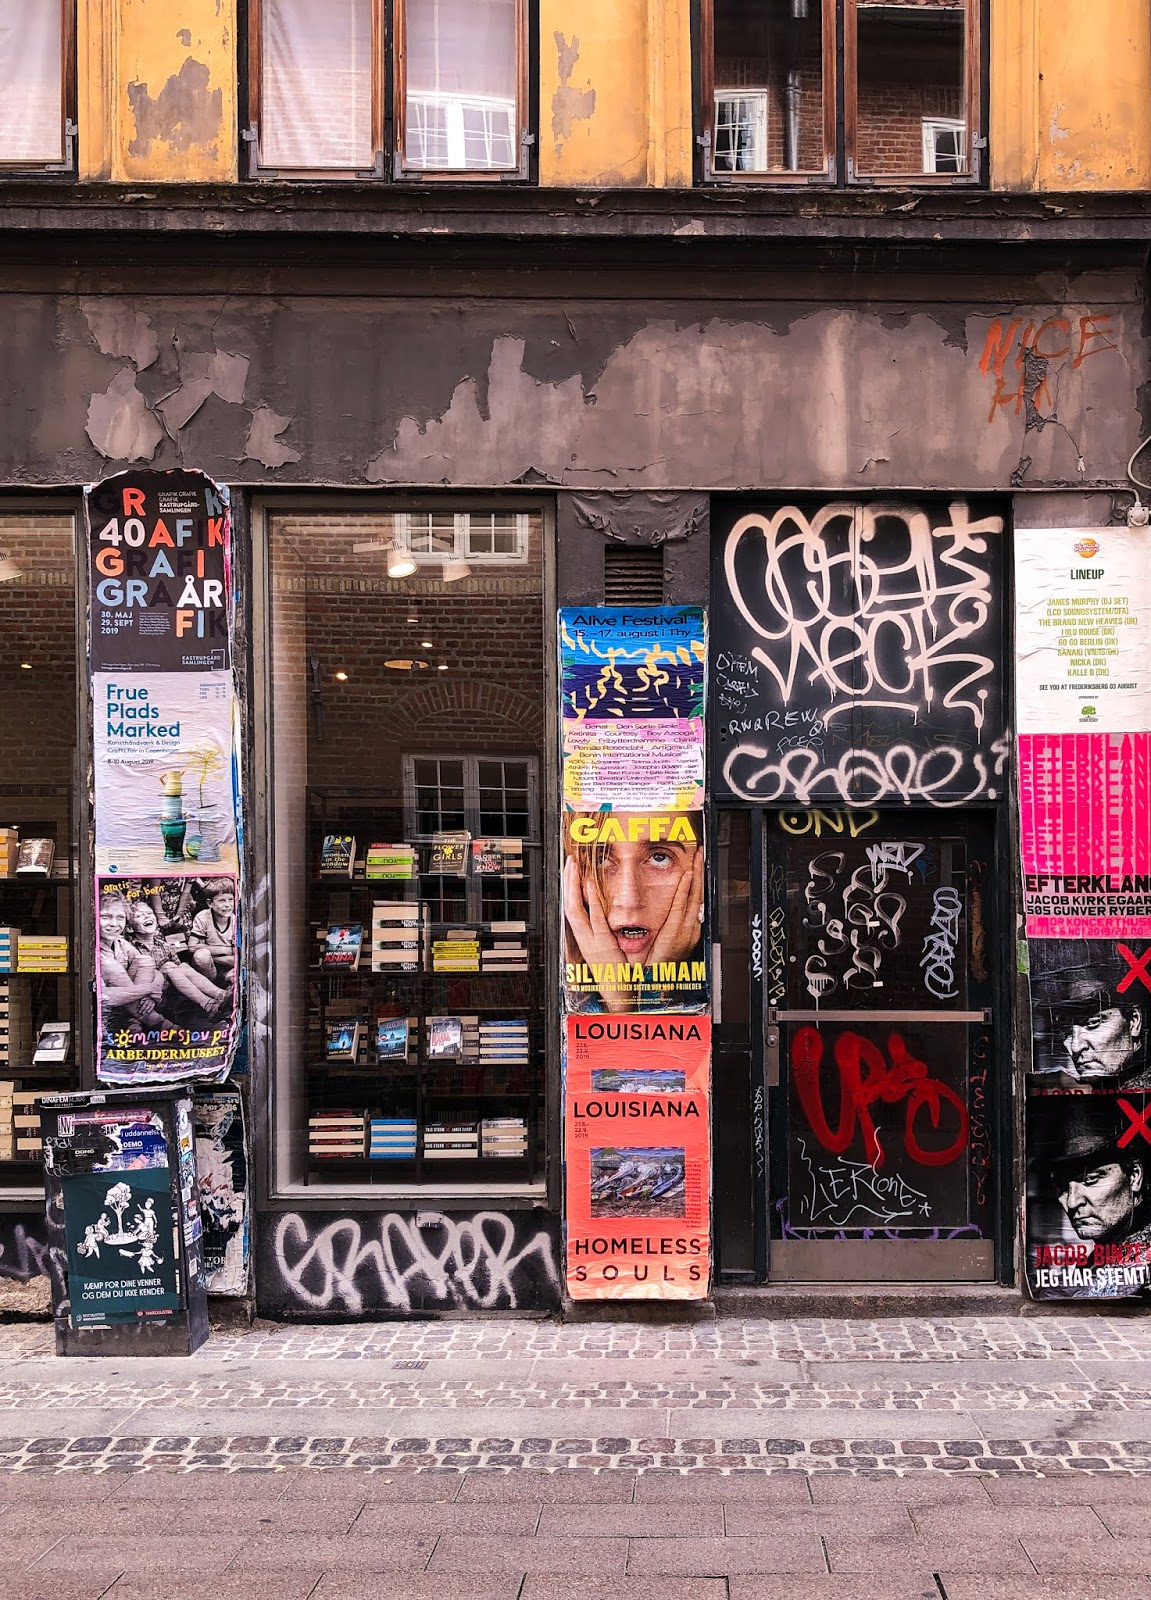 run down shop front in Copenhagen featuring promotional posters and graffiti